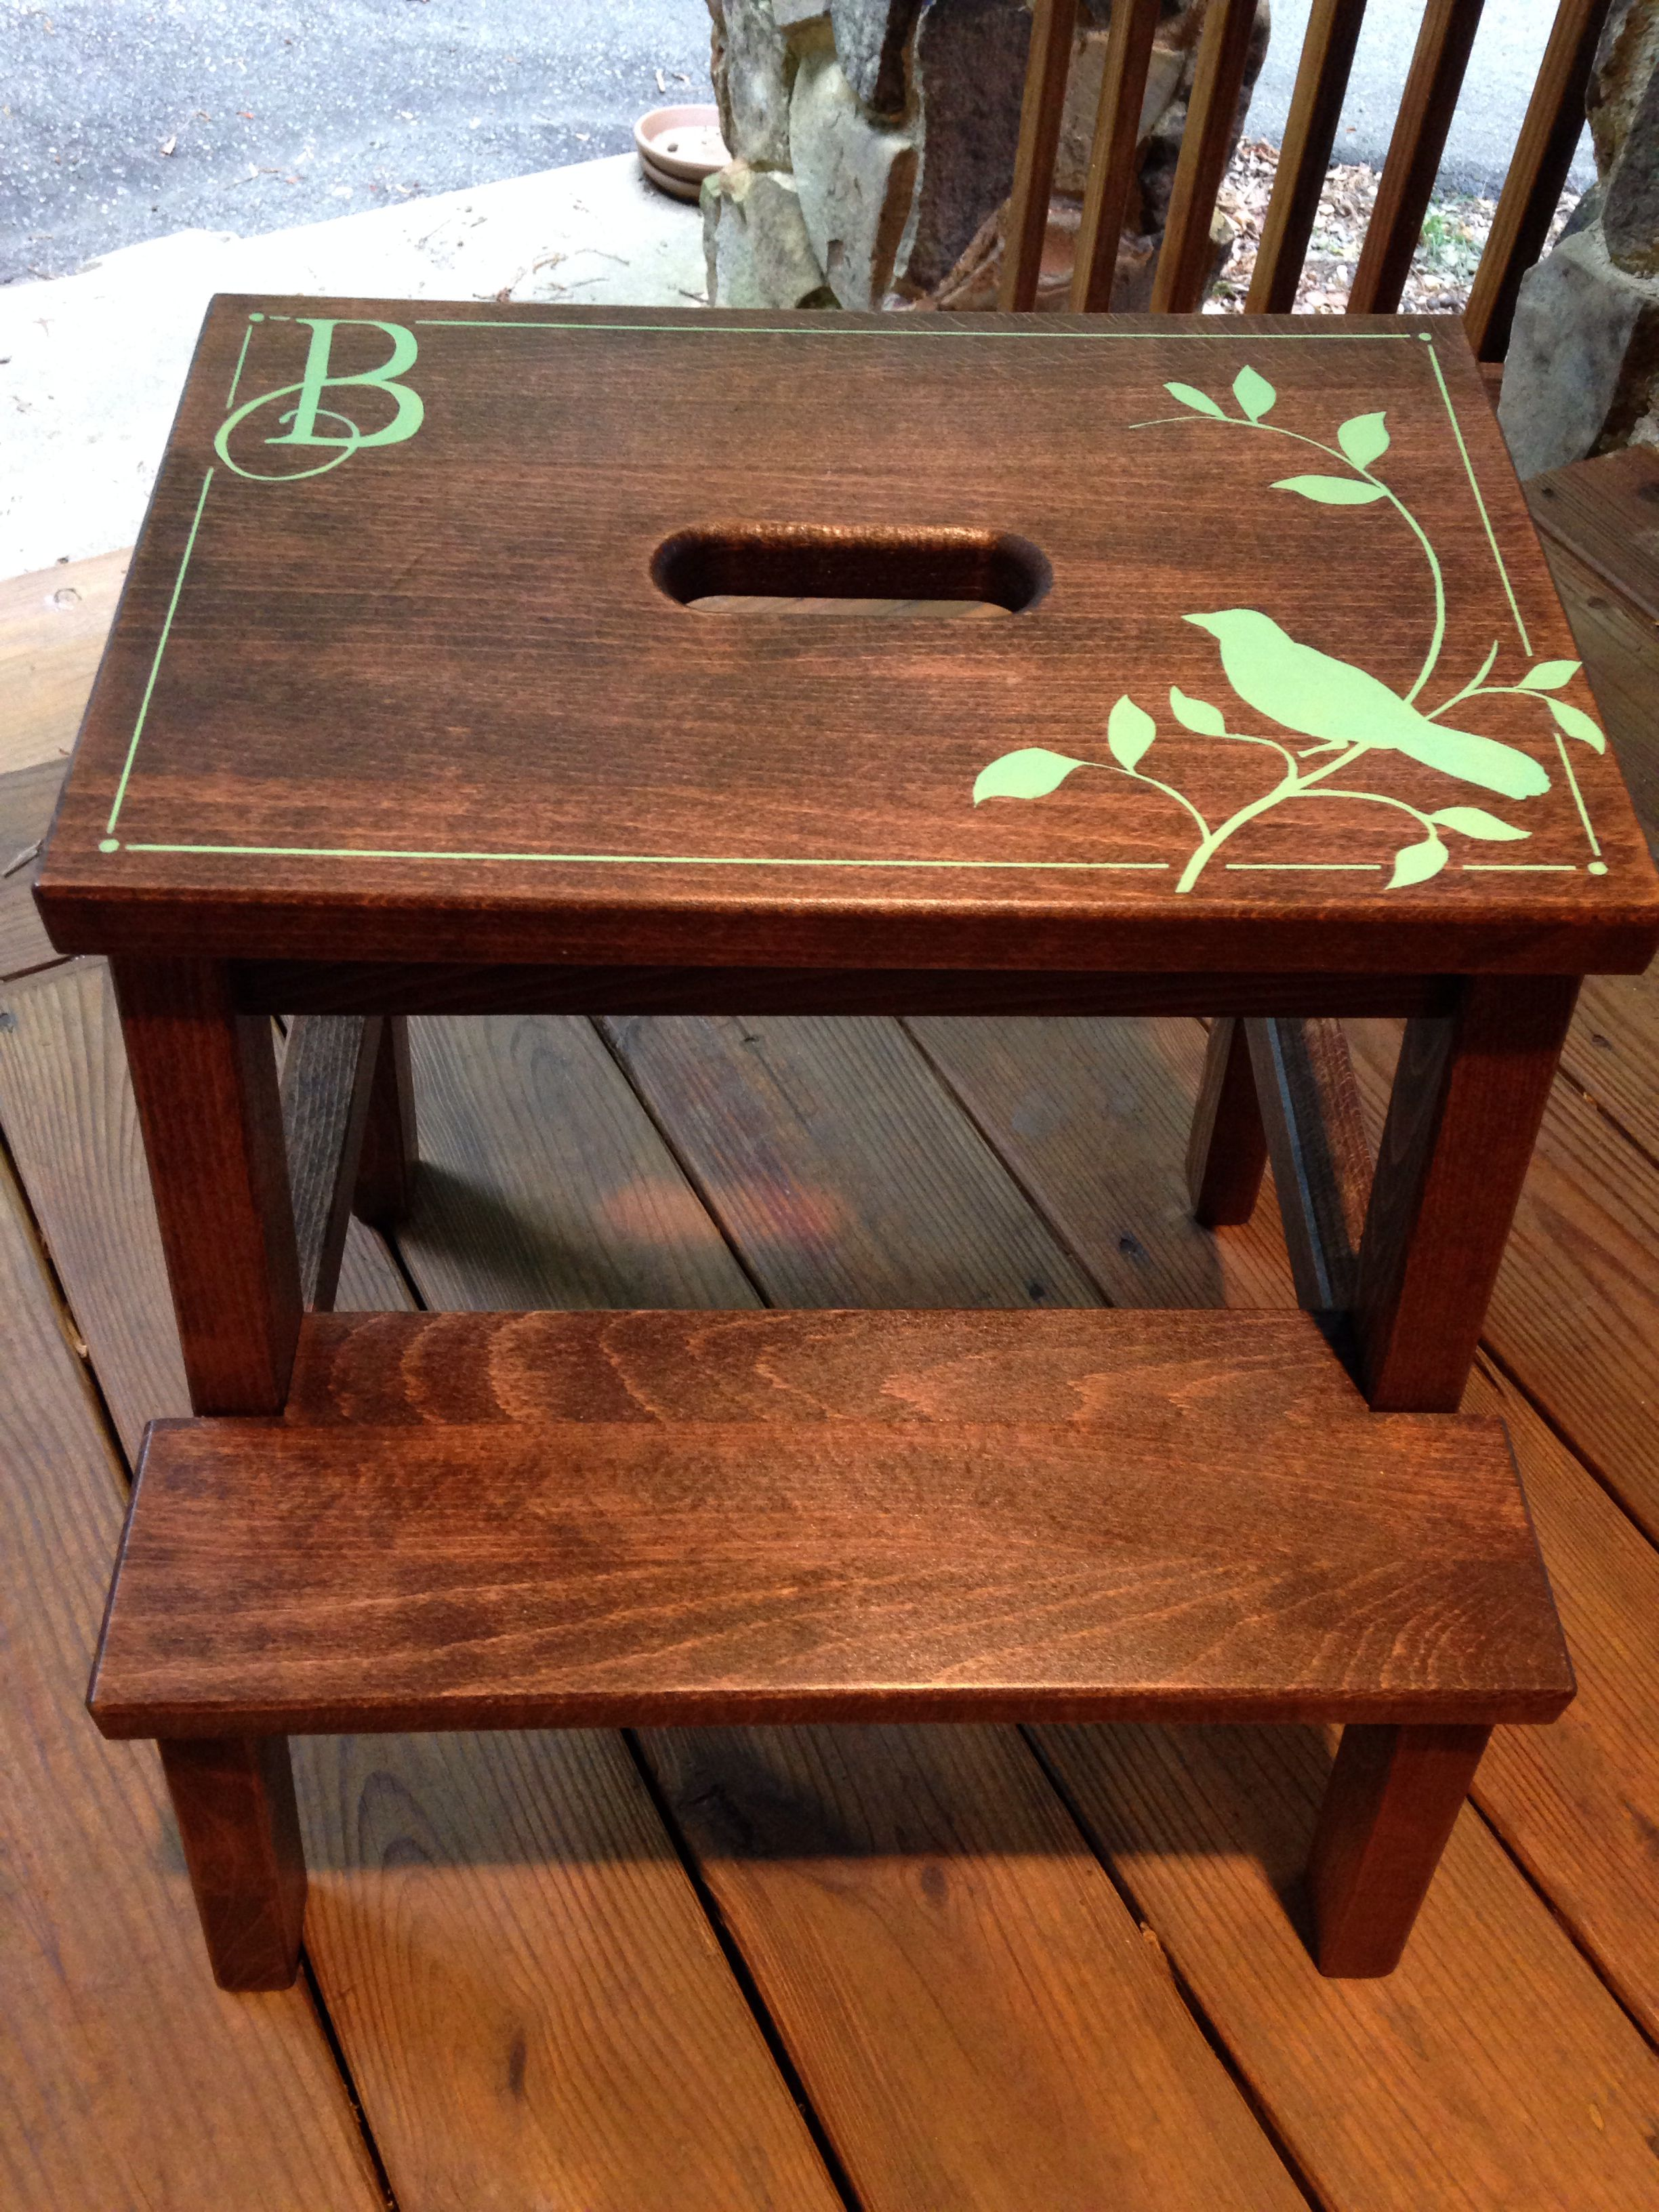 Walnut Stain, Contact Paper Stencilhand Painted, And